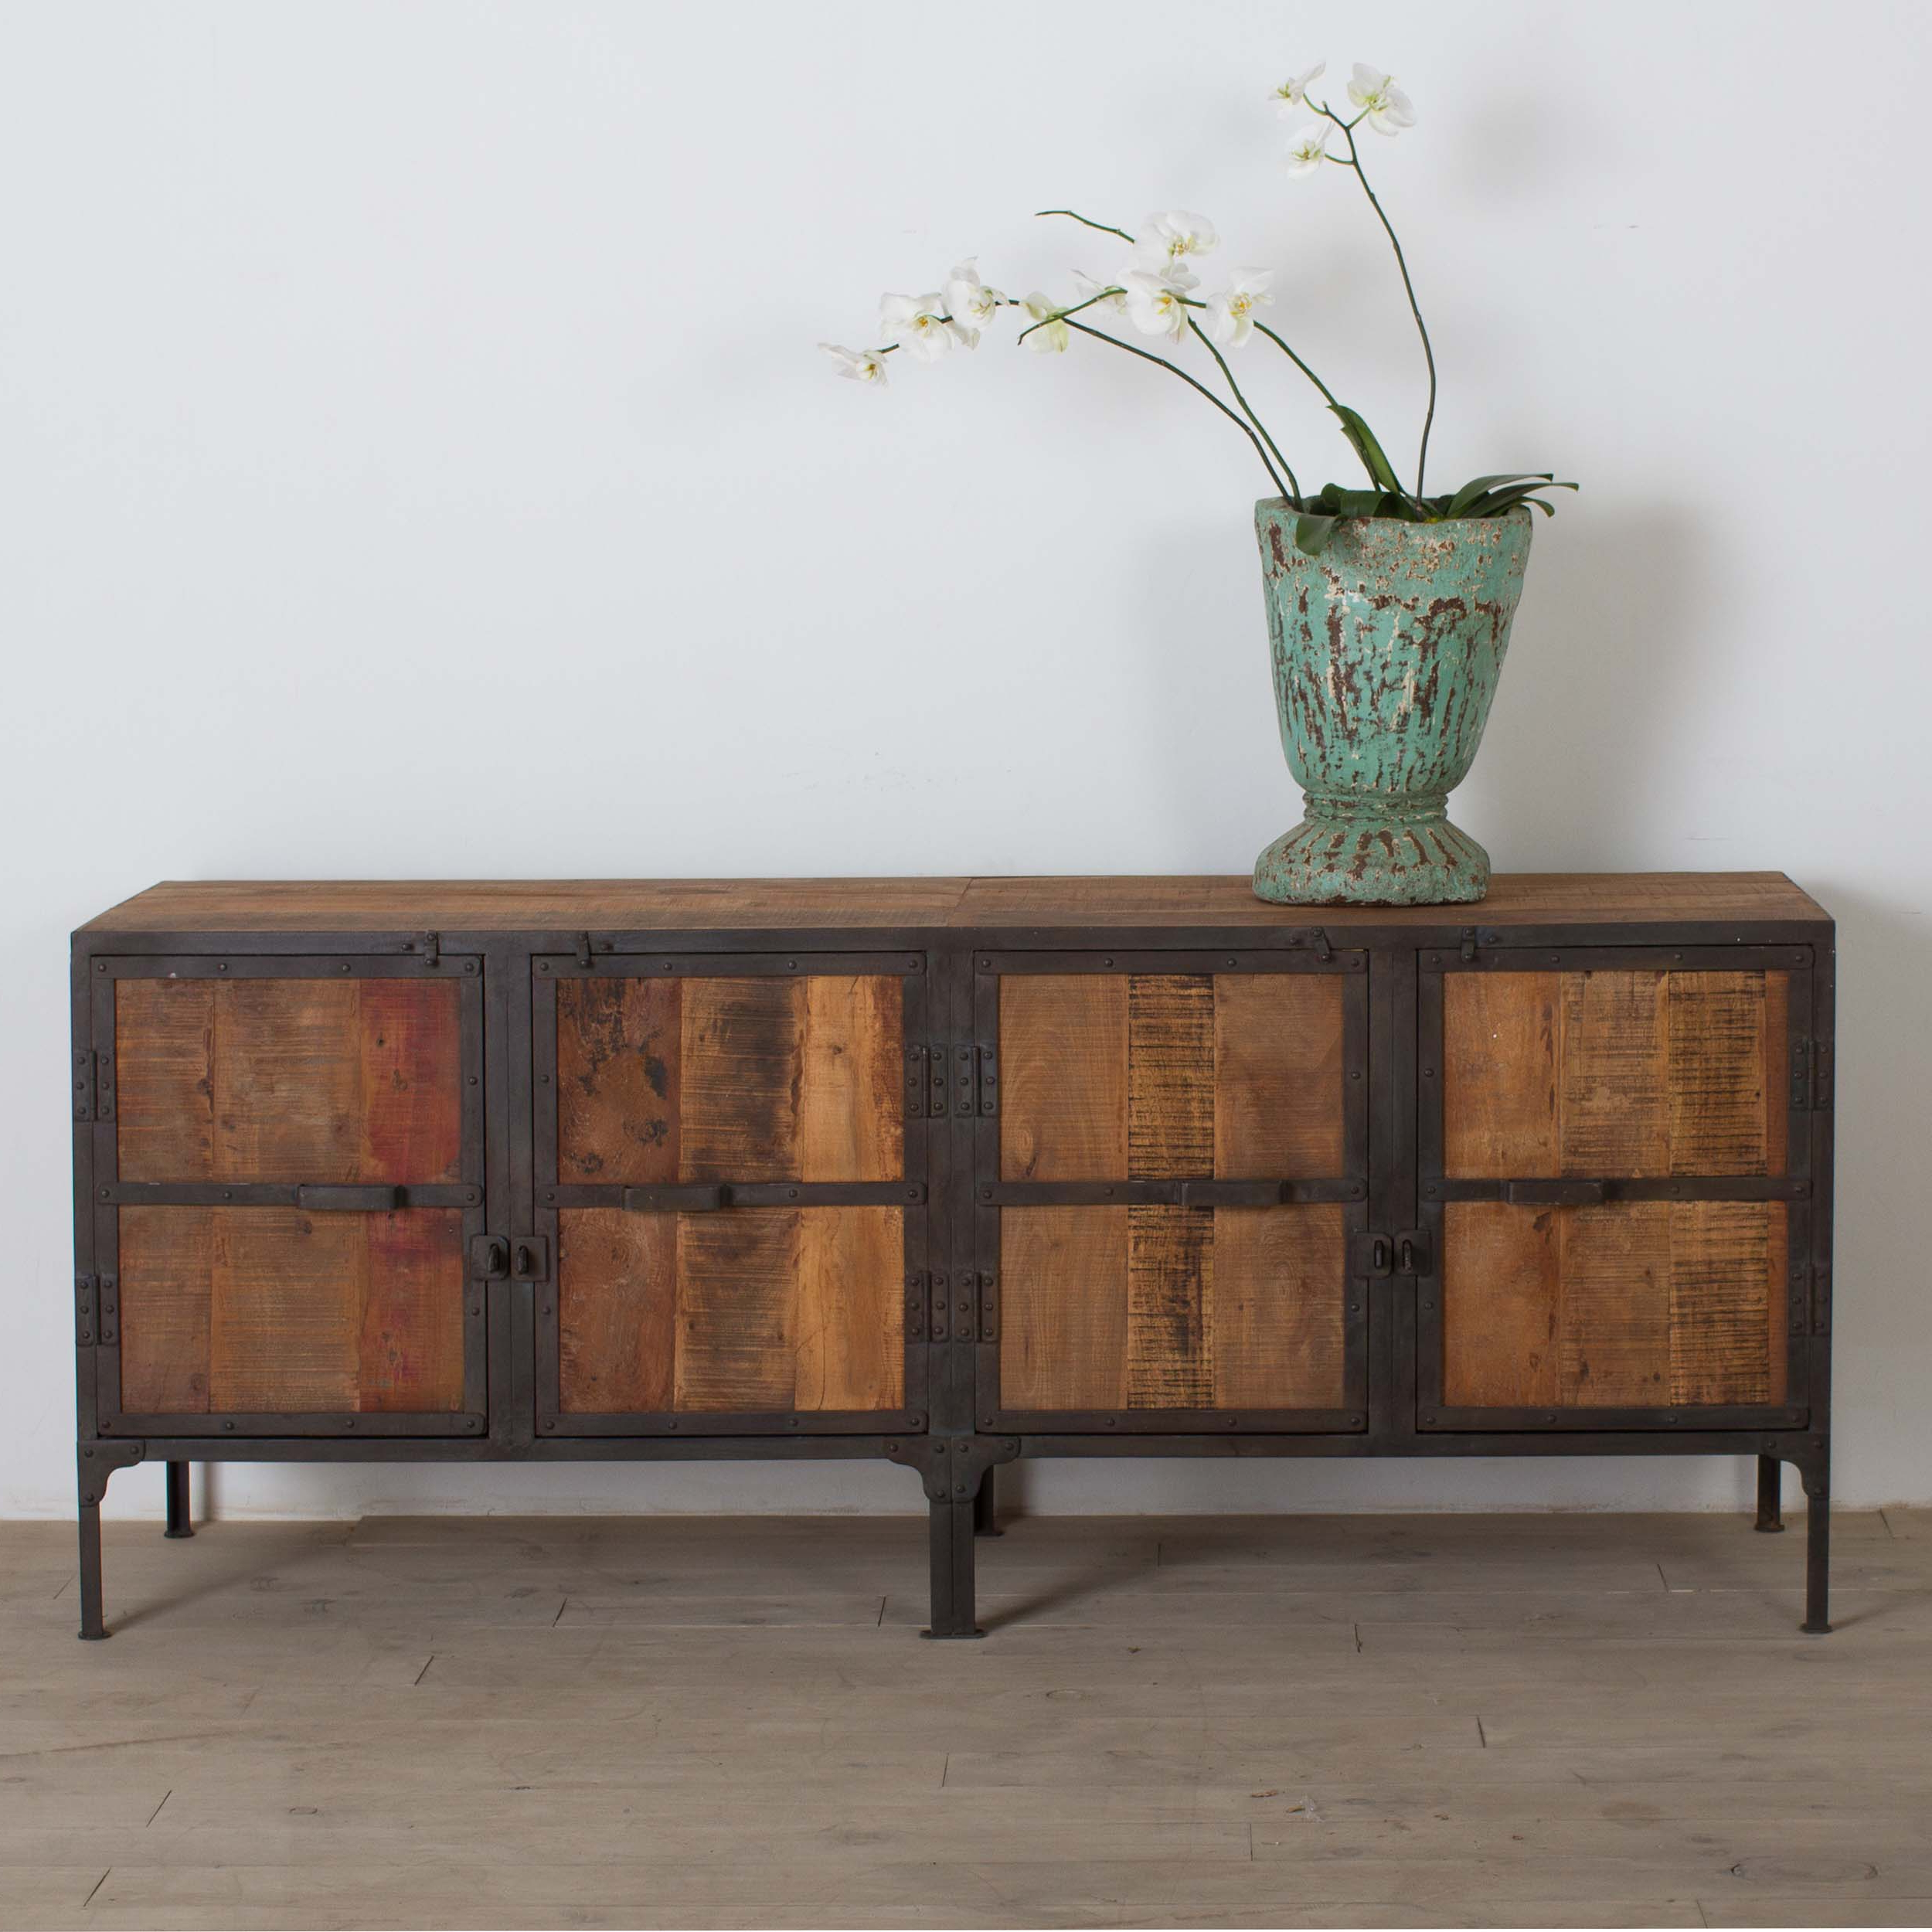 Black Oak Wood And Wrought Iron Sideboards Within Most Up To Date Shop Handmade Cg Sparks Handmade Hyderabad Reclaimed Wood And Metal (View 13 of 20)